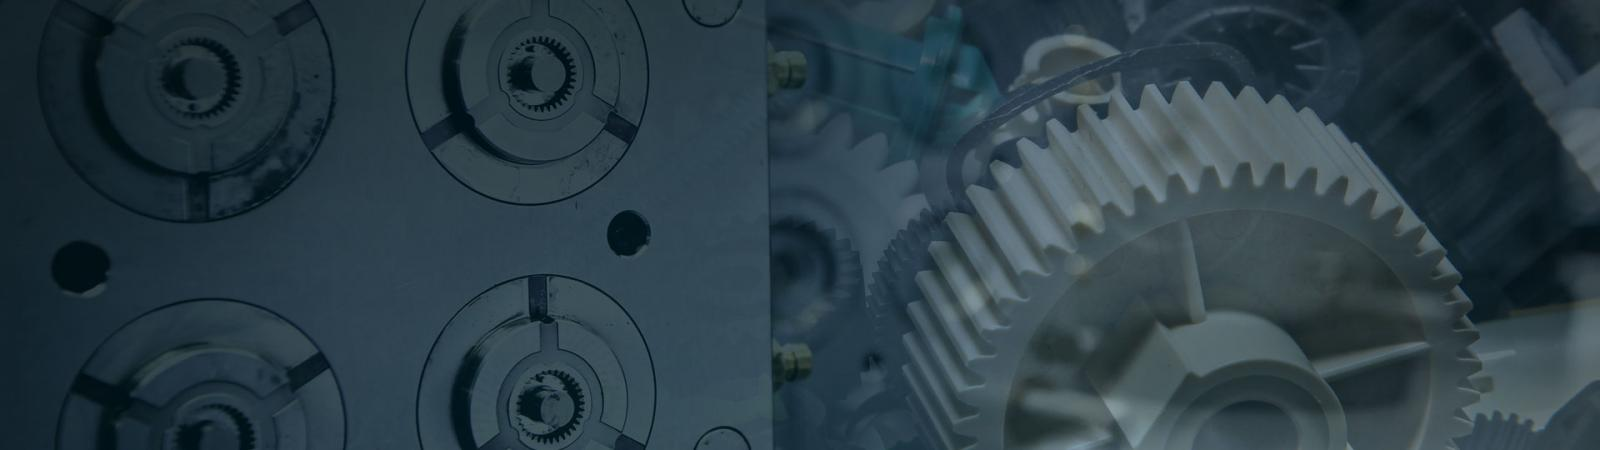 Custom plastic gears and drives and plastic gear tooling